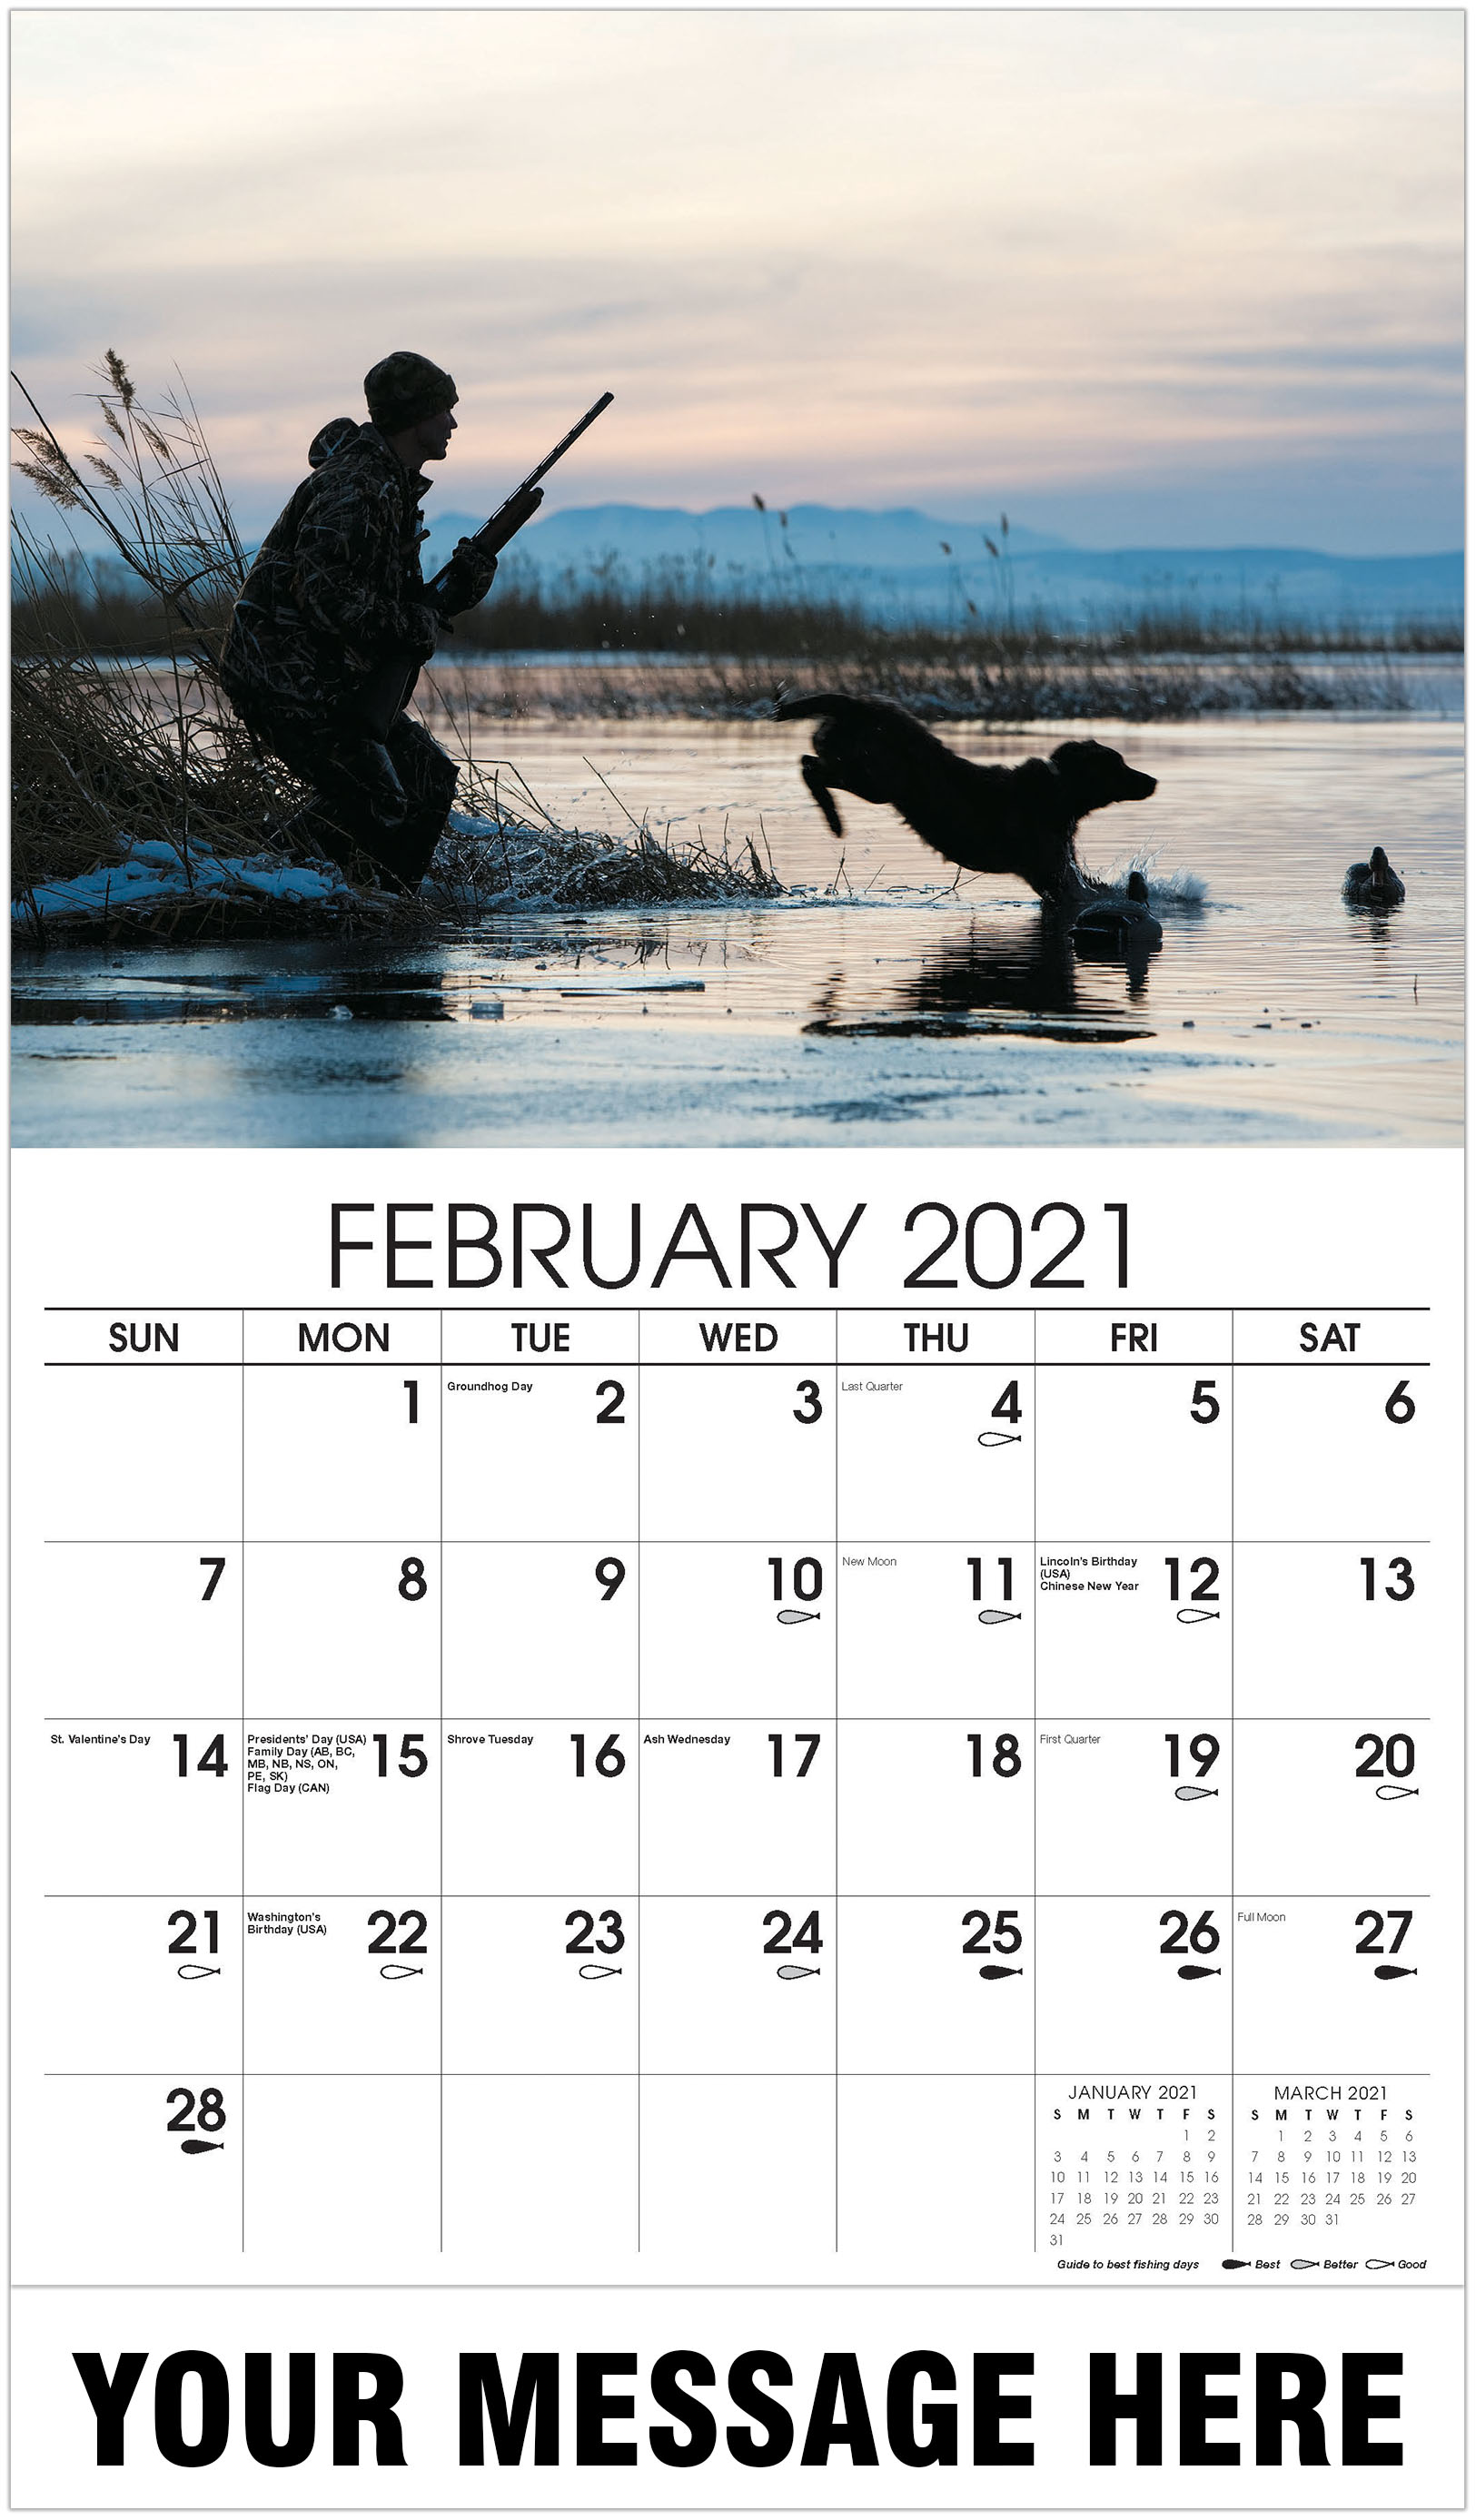 Man out hunting - February - Fishing & Hunting 2021 Promotional Calendar